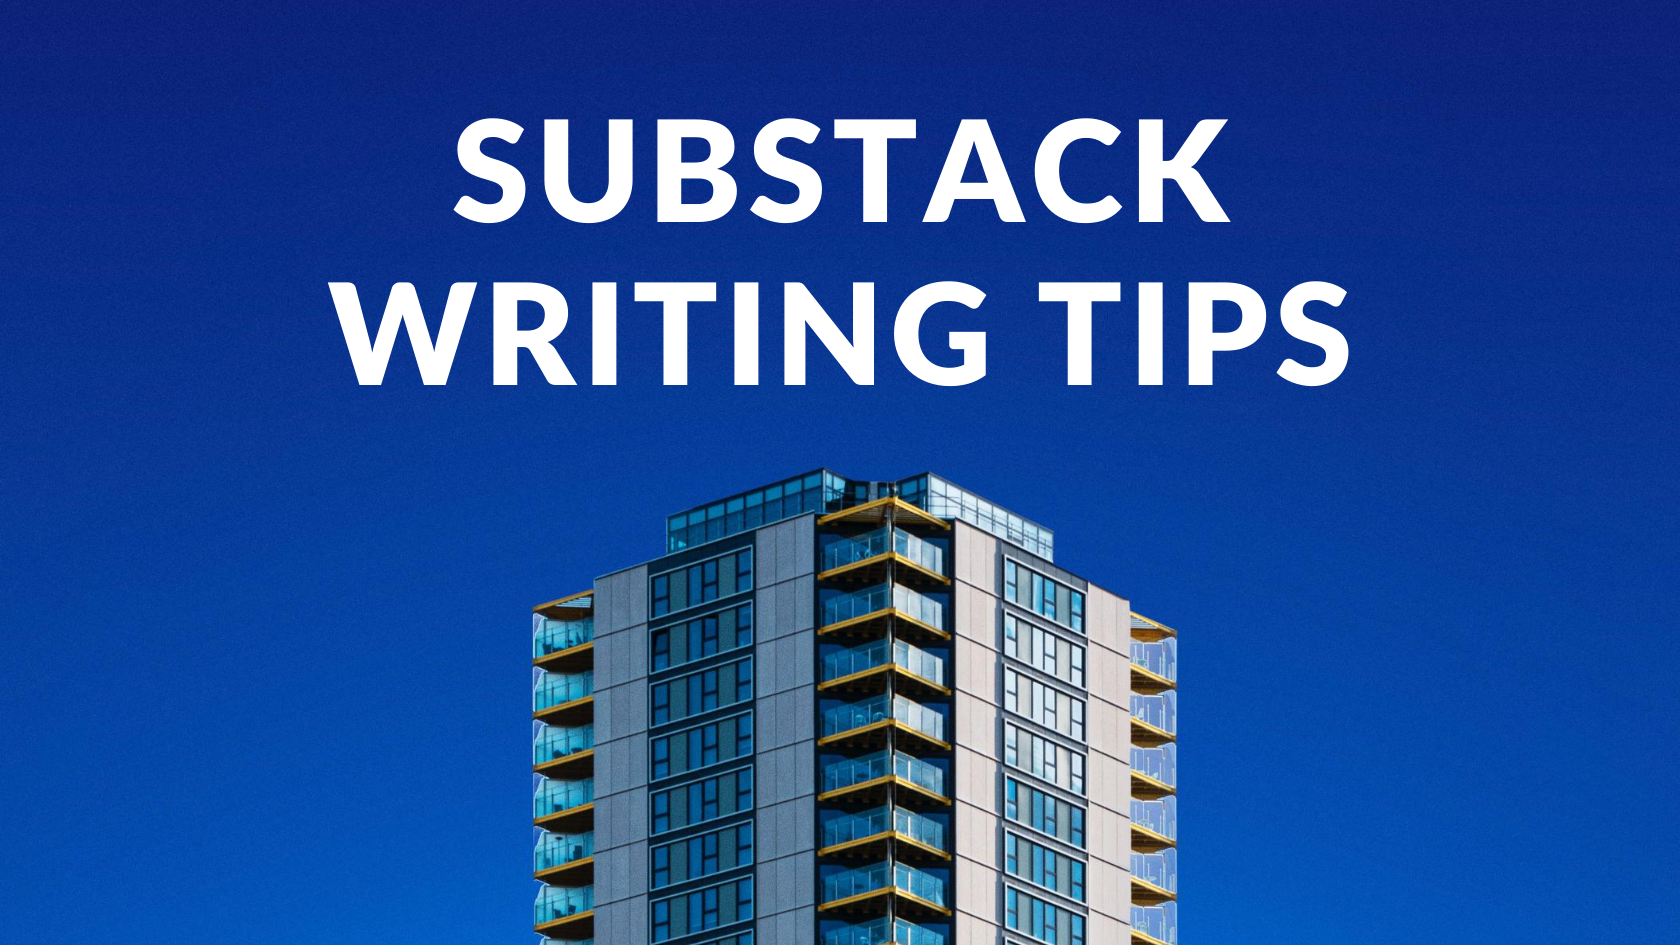 substack writing tips, how to use substack, best substack newsletters, substack review, substack faq, substack tips, substack